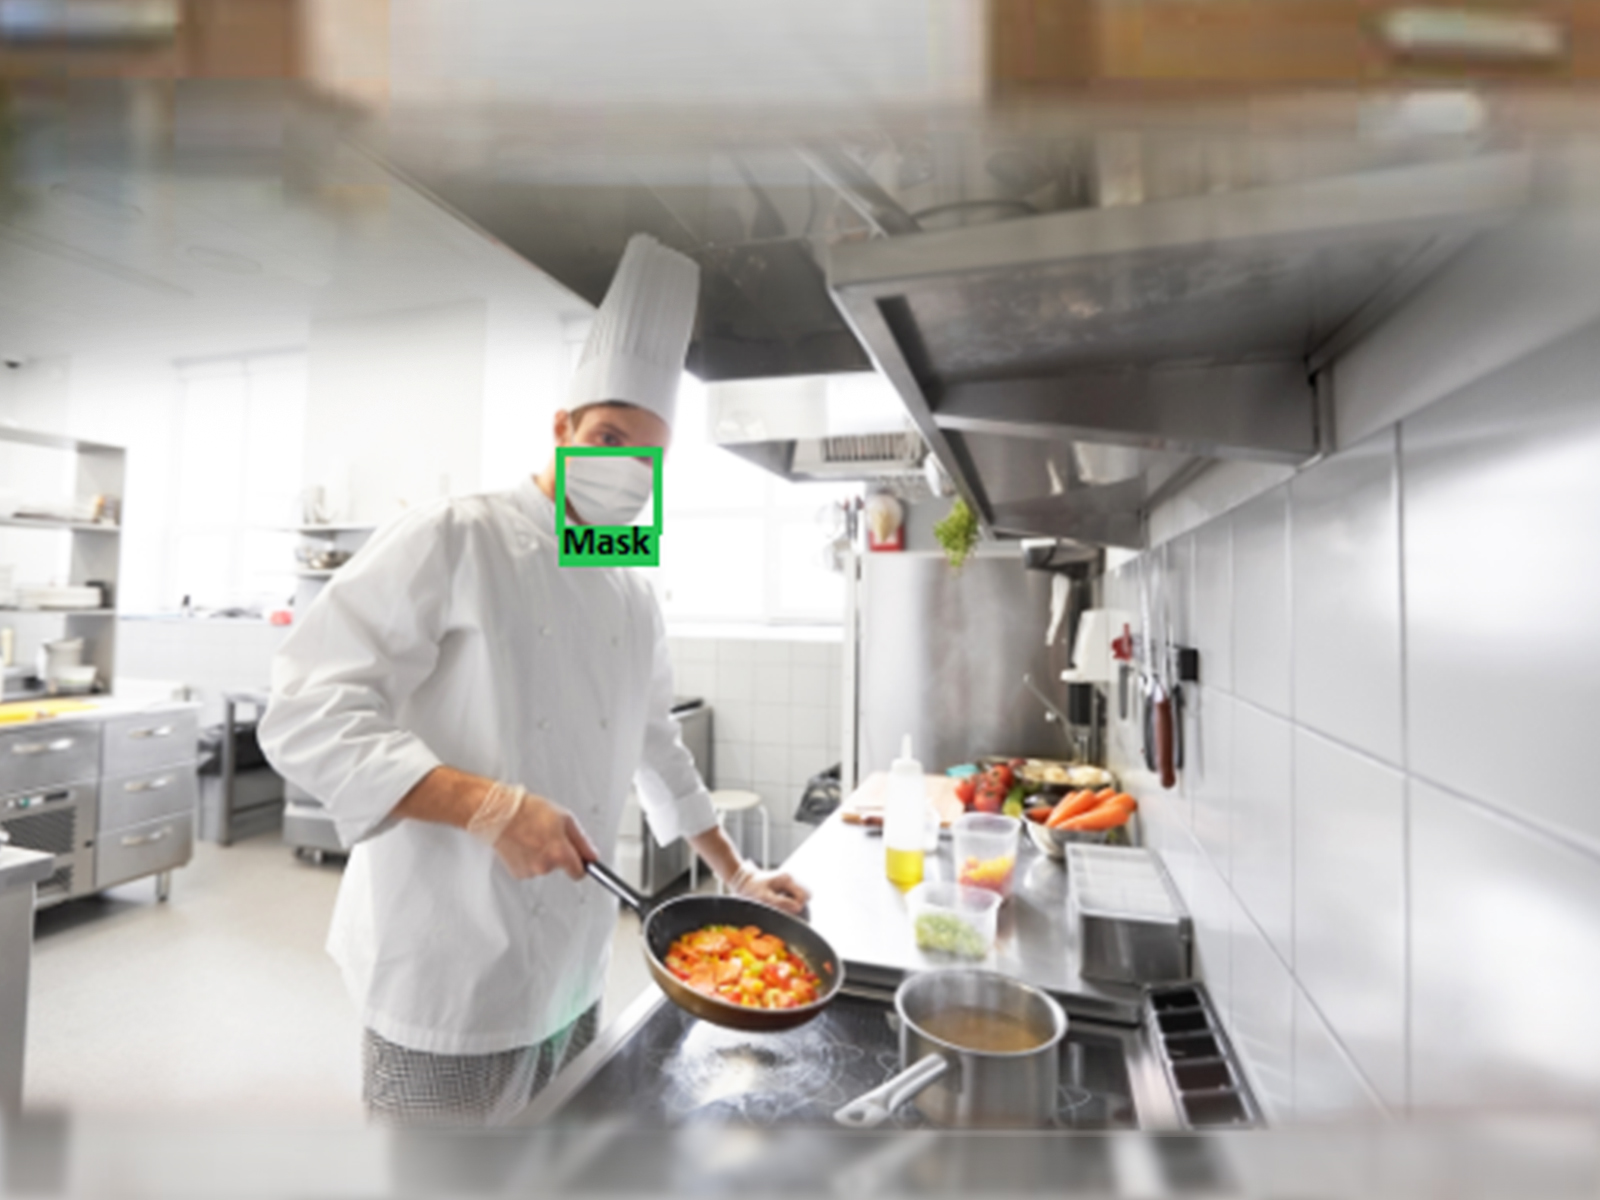 Case Study: How This Cloud Restaurant Company Deployed AI-Based Hygiene & Safety Monitoring Solution For Their Kitchen